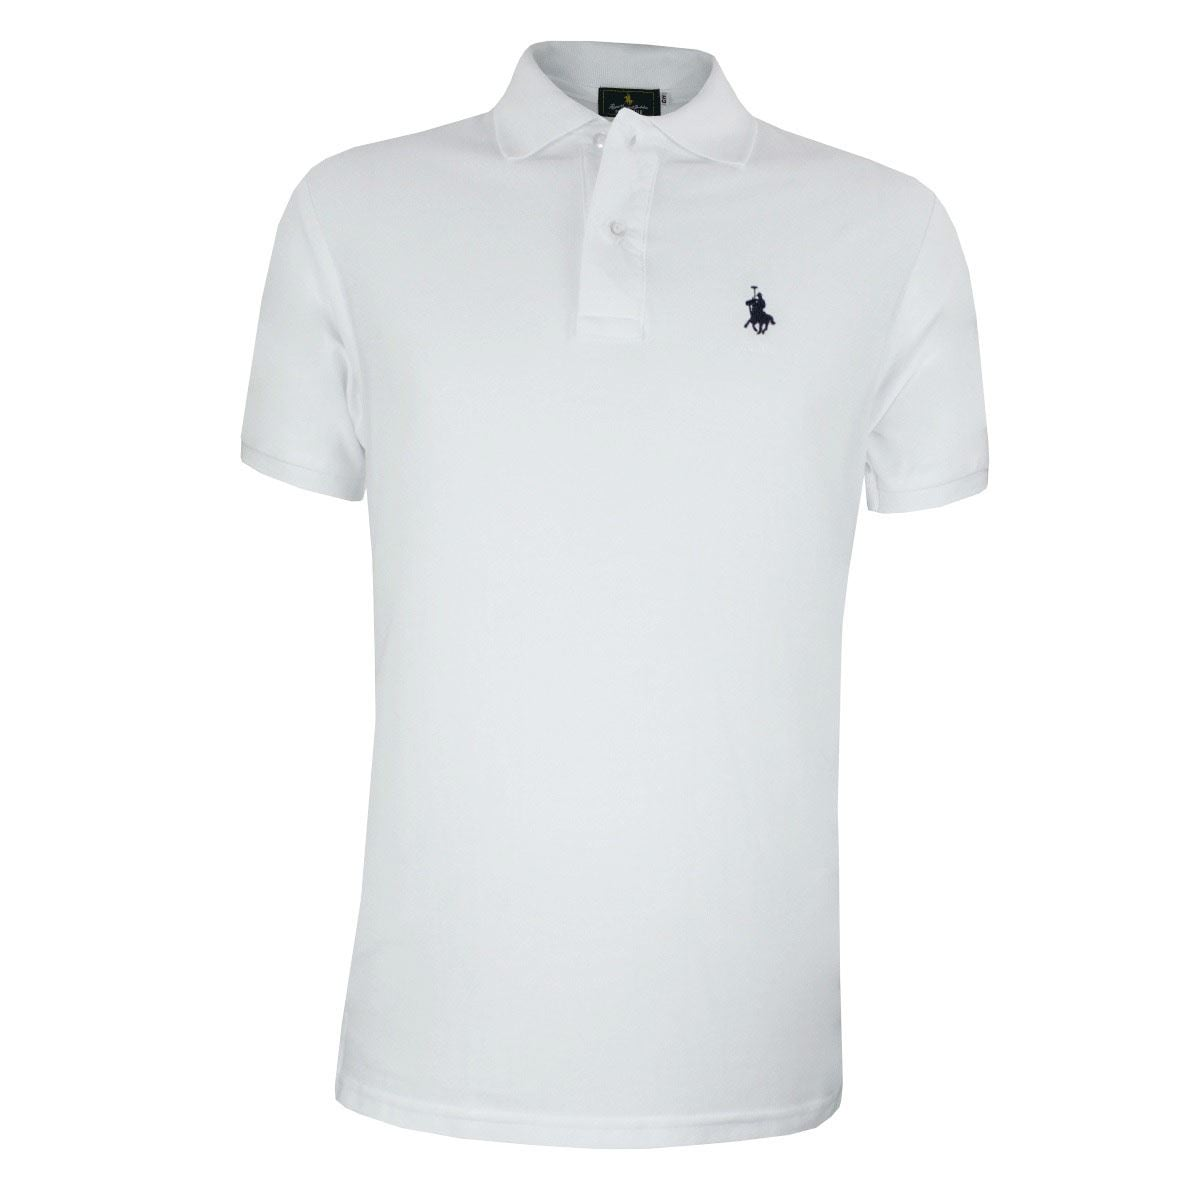 Playera Polo Club Mc Pique Algodón Gd Blanco